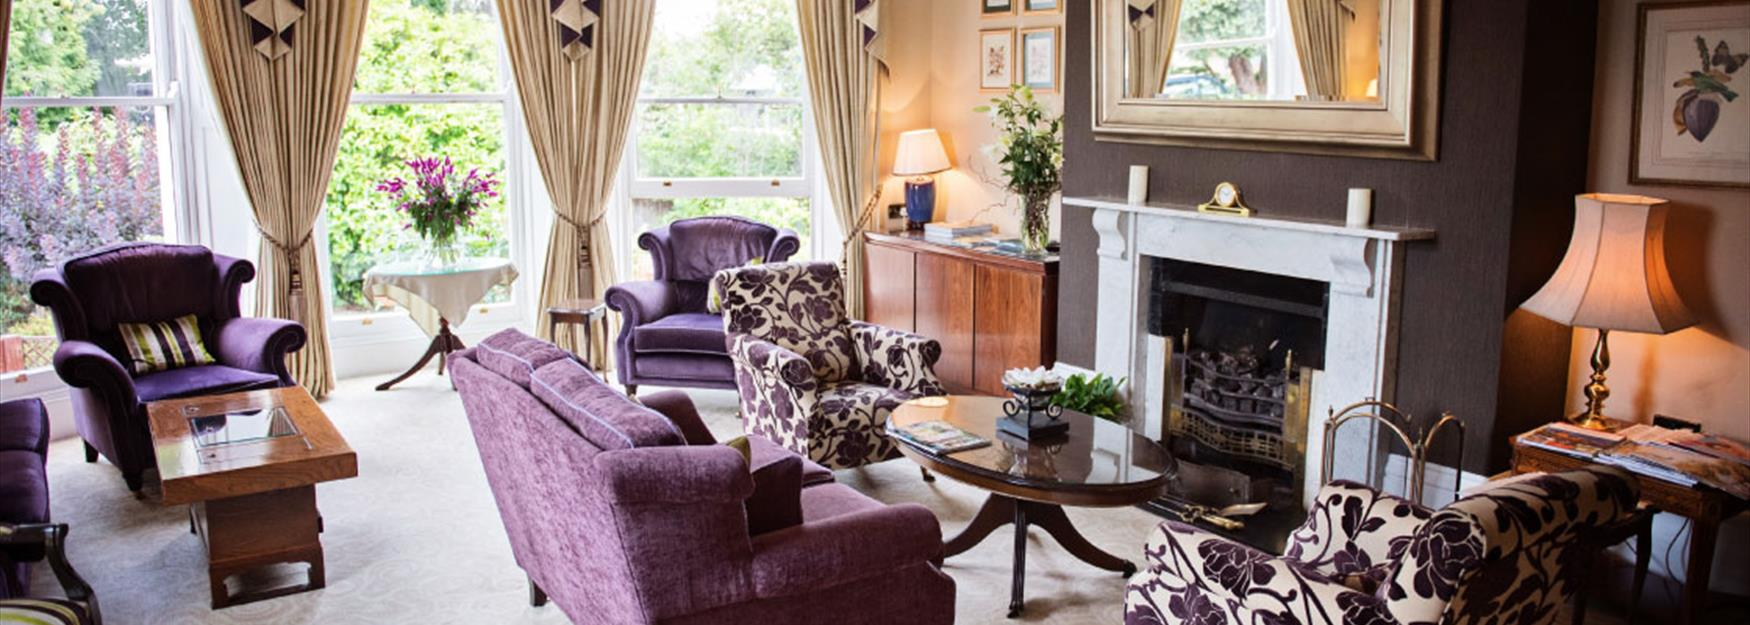 Bb And Guest House Accommodation In Cheltenham The Cotswolds